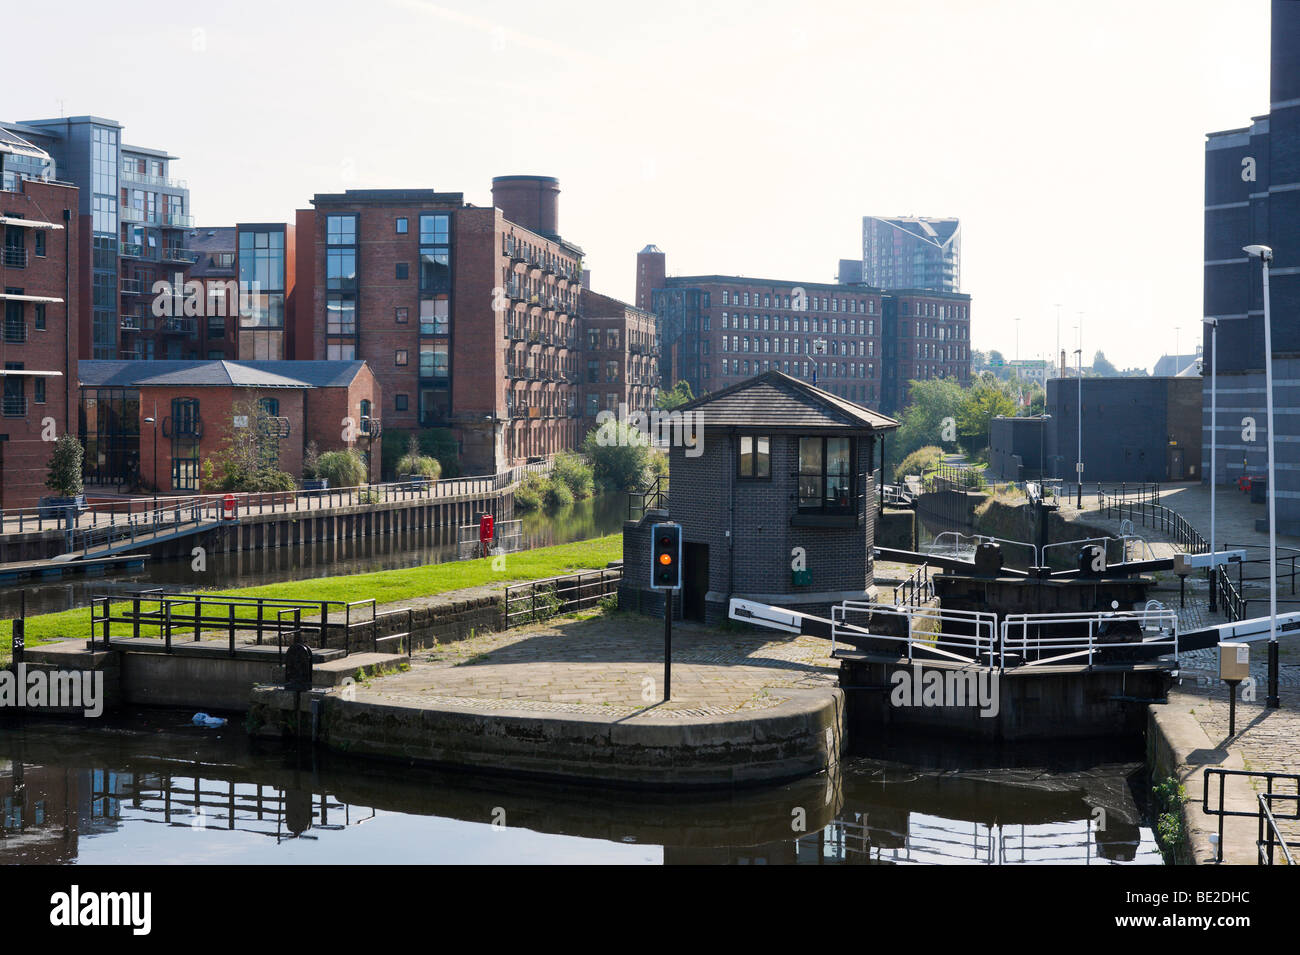 Lock gates on the River Aire outside the The Royal Armouries Museum, Clarence Dock, Leeds, West Yorkshire, England - Stock Image